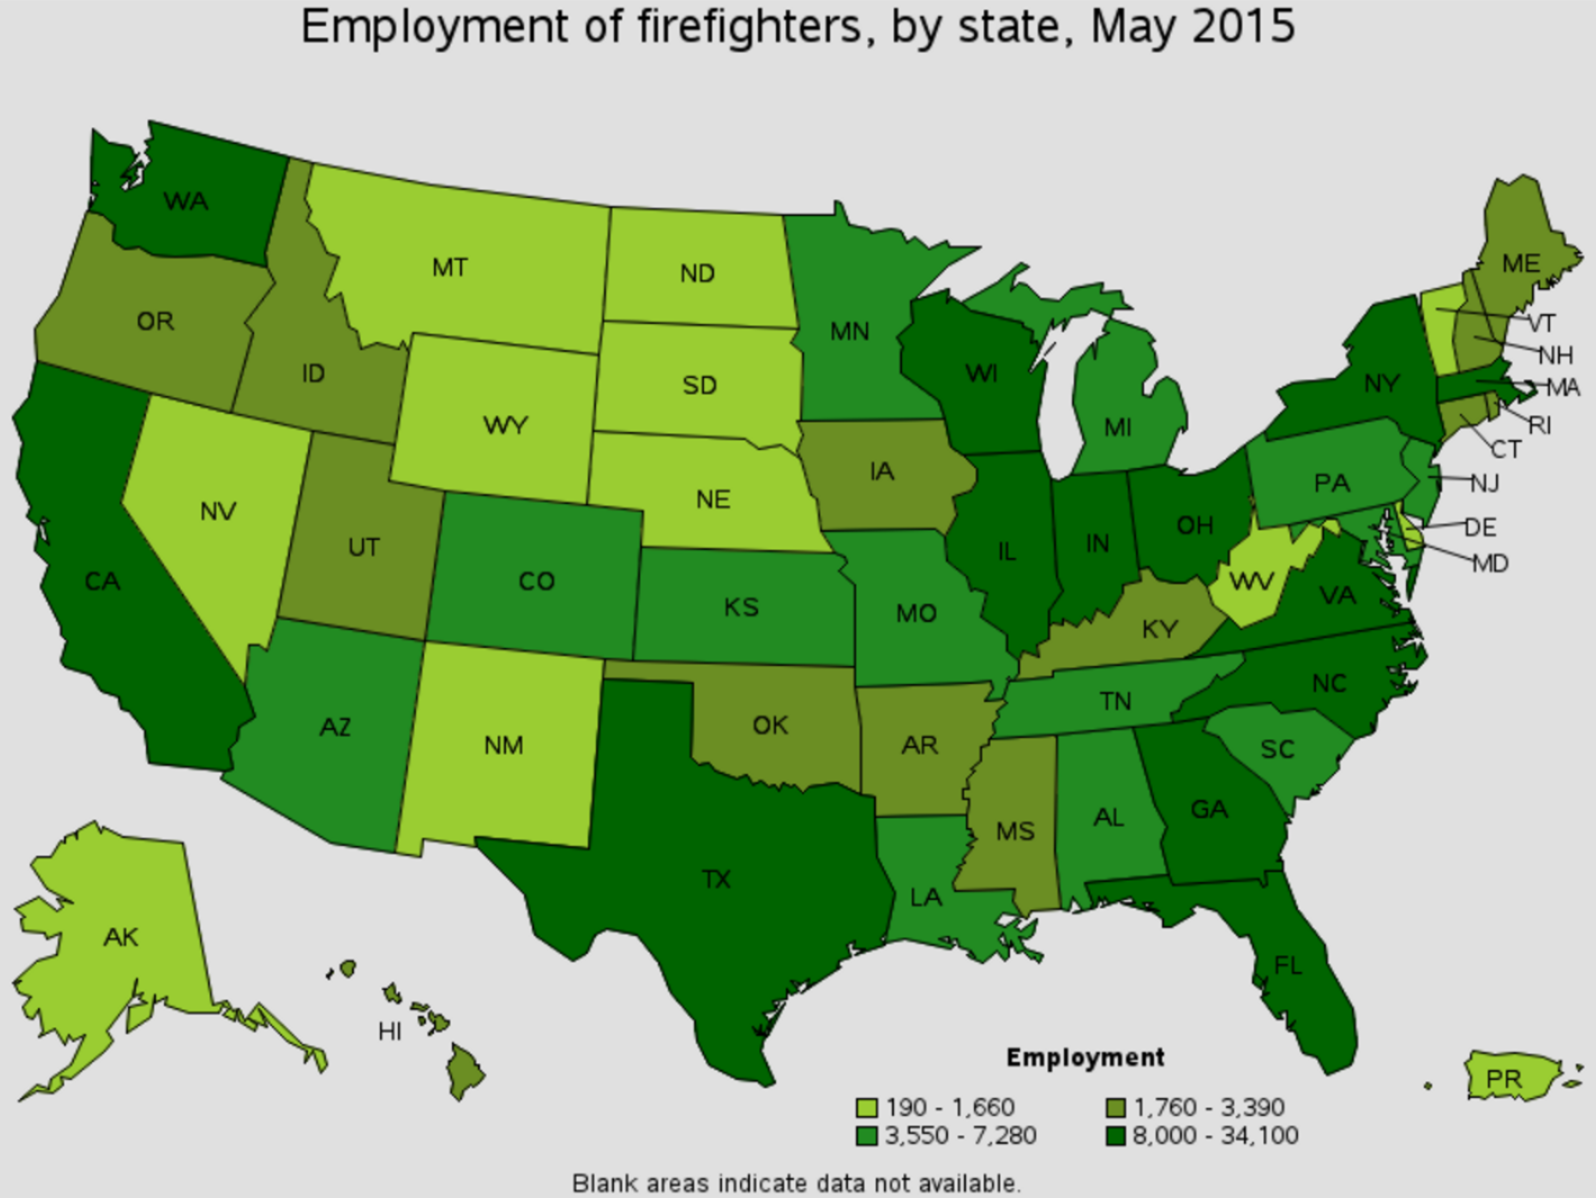 firefighter job outlook by state Scottsdale Arizona